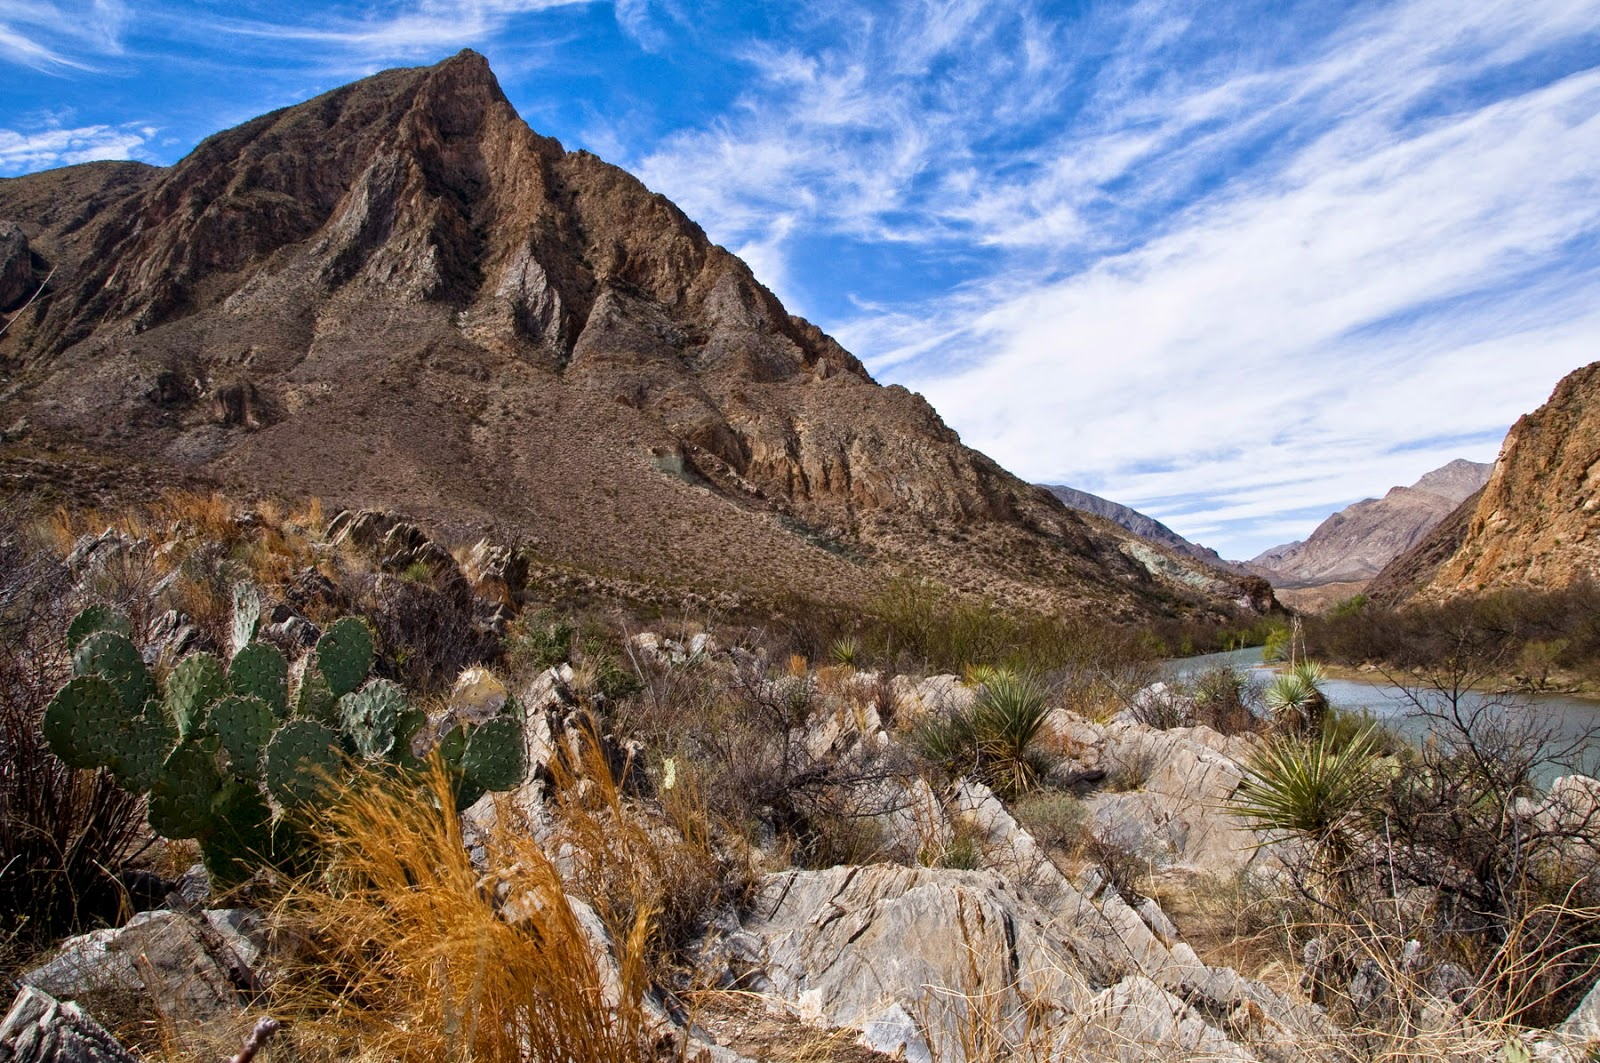 The Great Chihuahuan Desert aka. Cactus Country, the locale for one of the early NAFTA legal battles involving the environment. Photo by David Lauer licensed under the Creative Commons Attribution-Share Alike 2.0 generic license